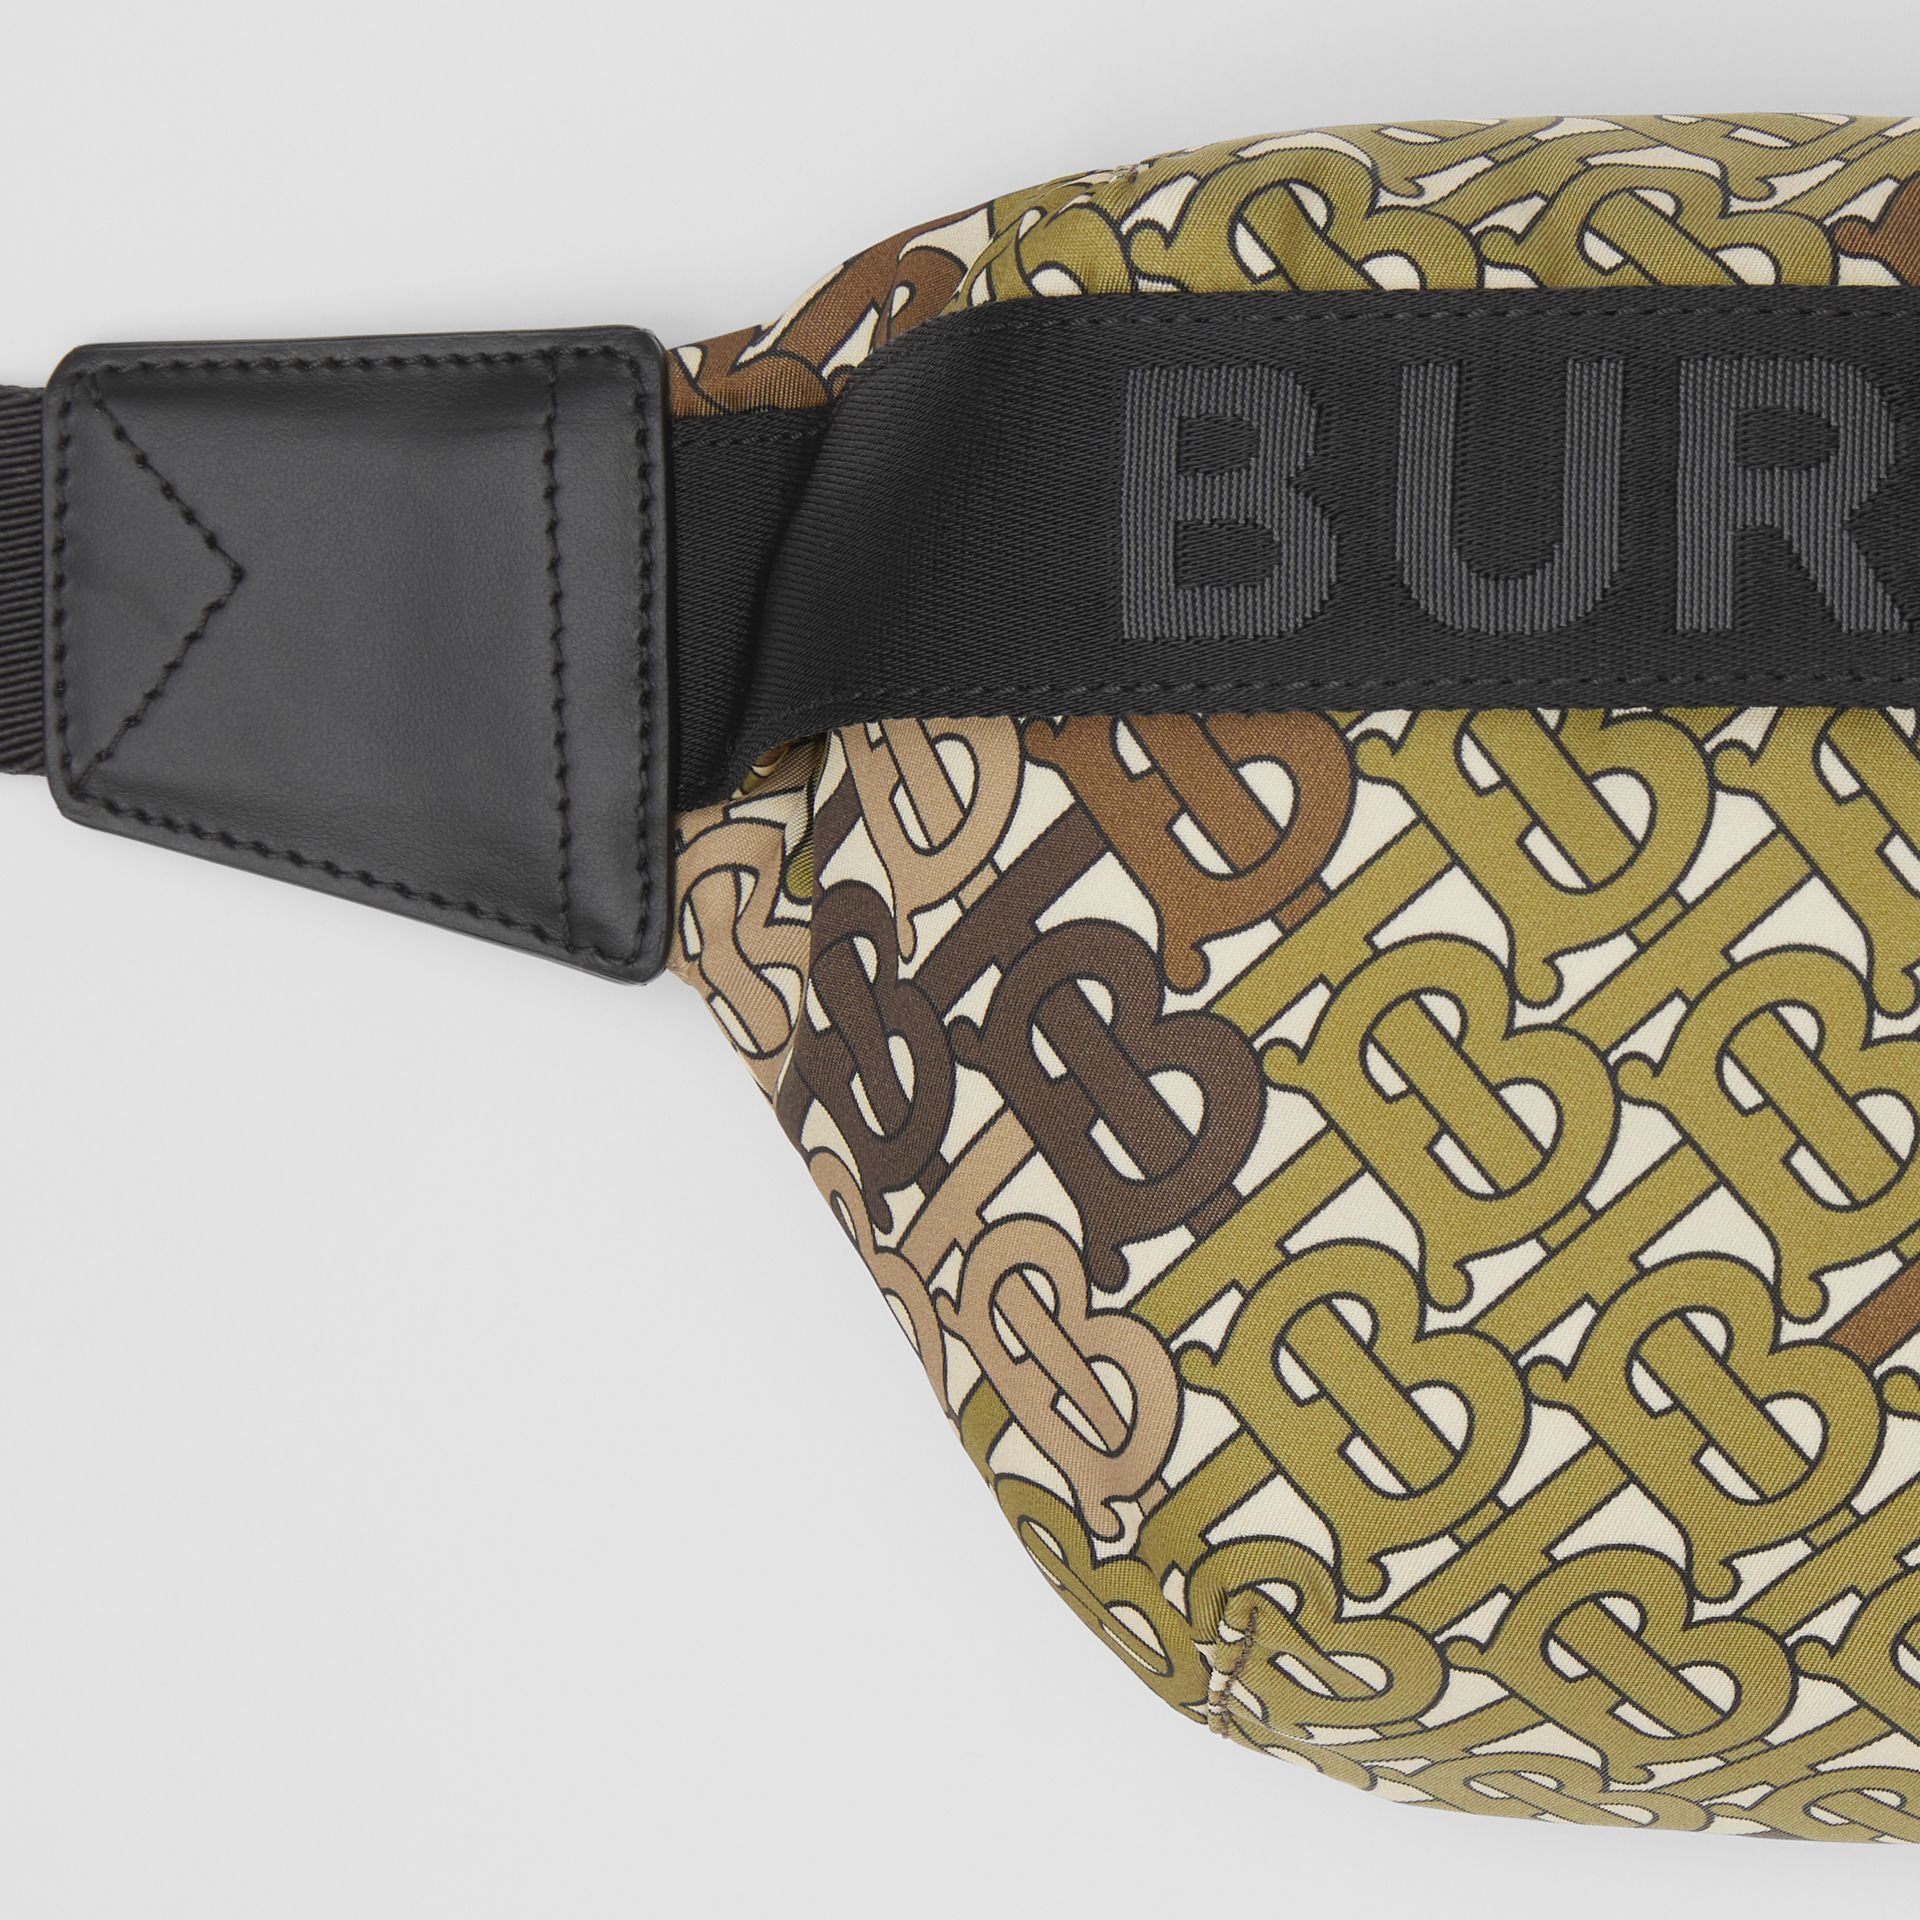 Medium Monogram Print Bum Bag in Khaki Green - Women | Burberry - gallery image 1